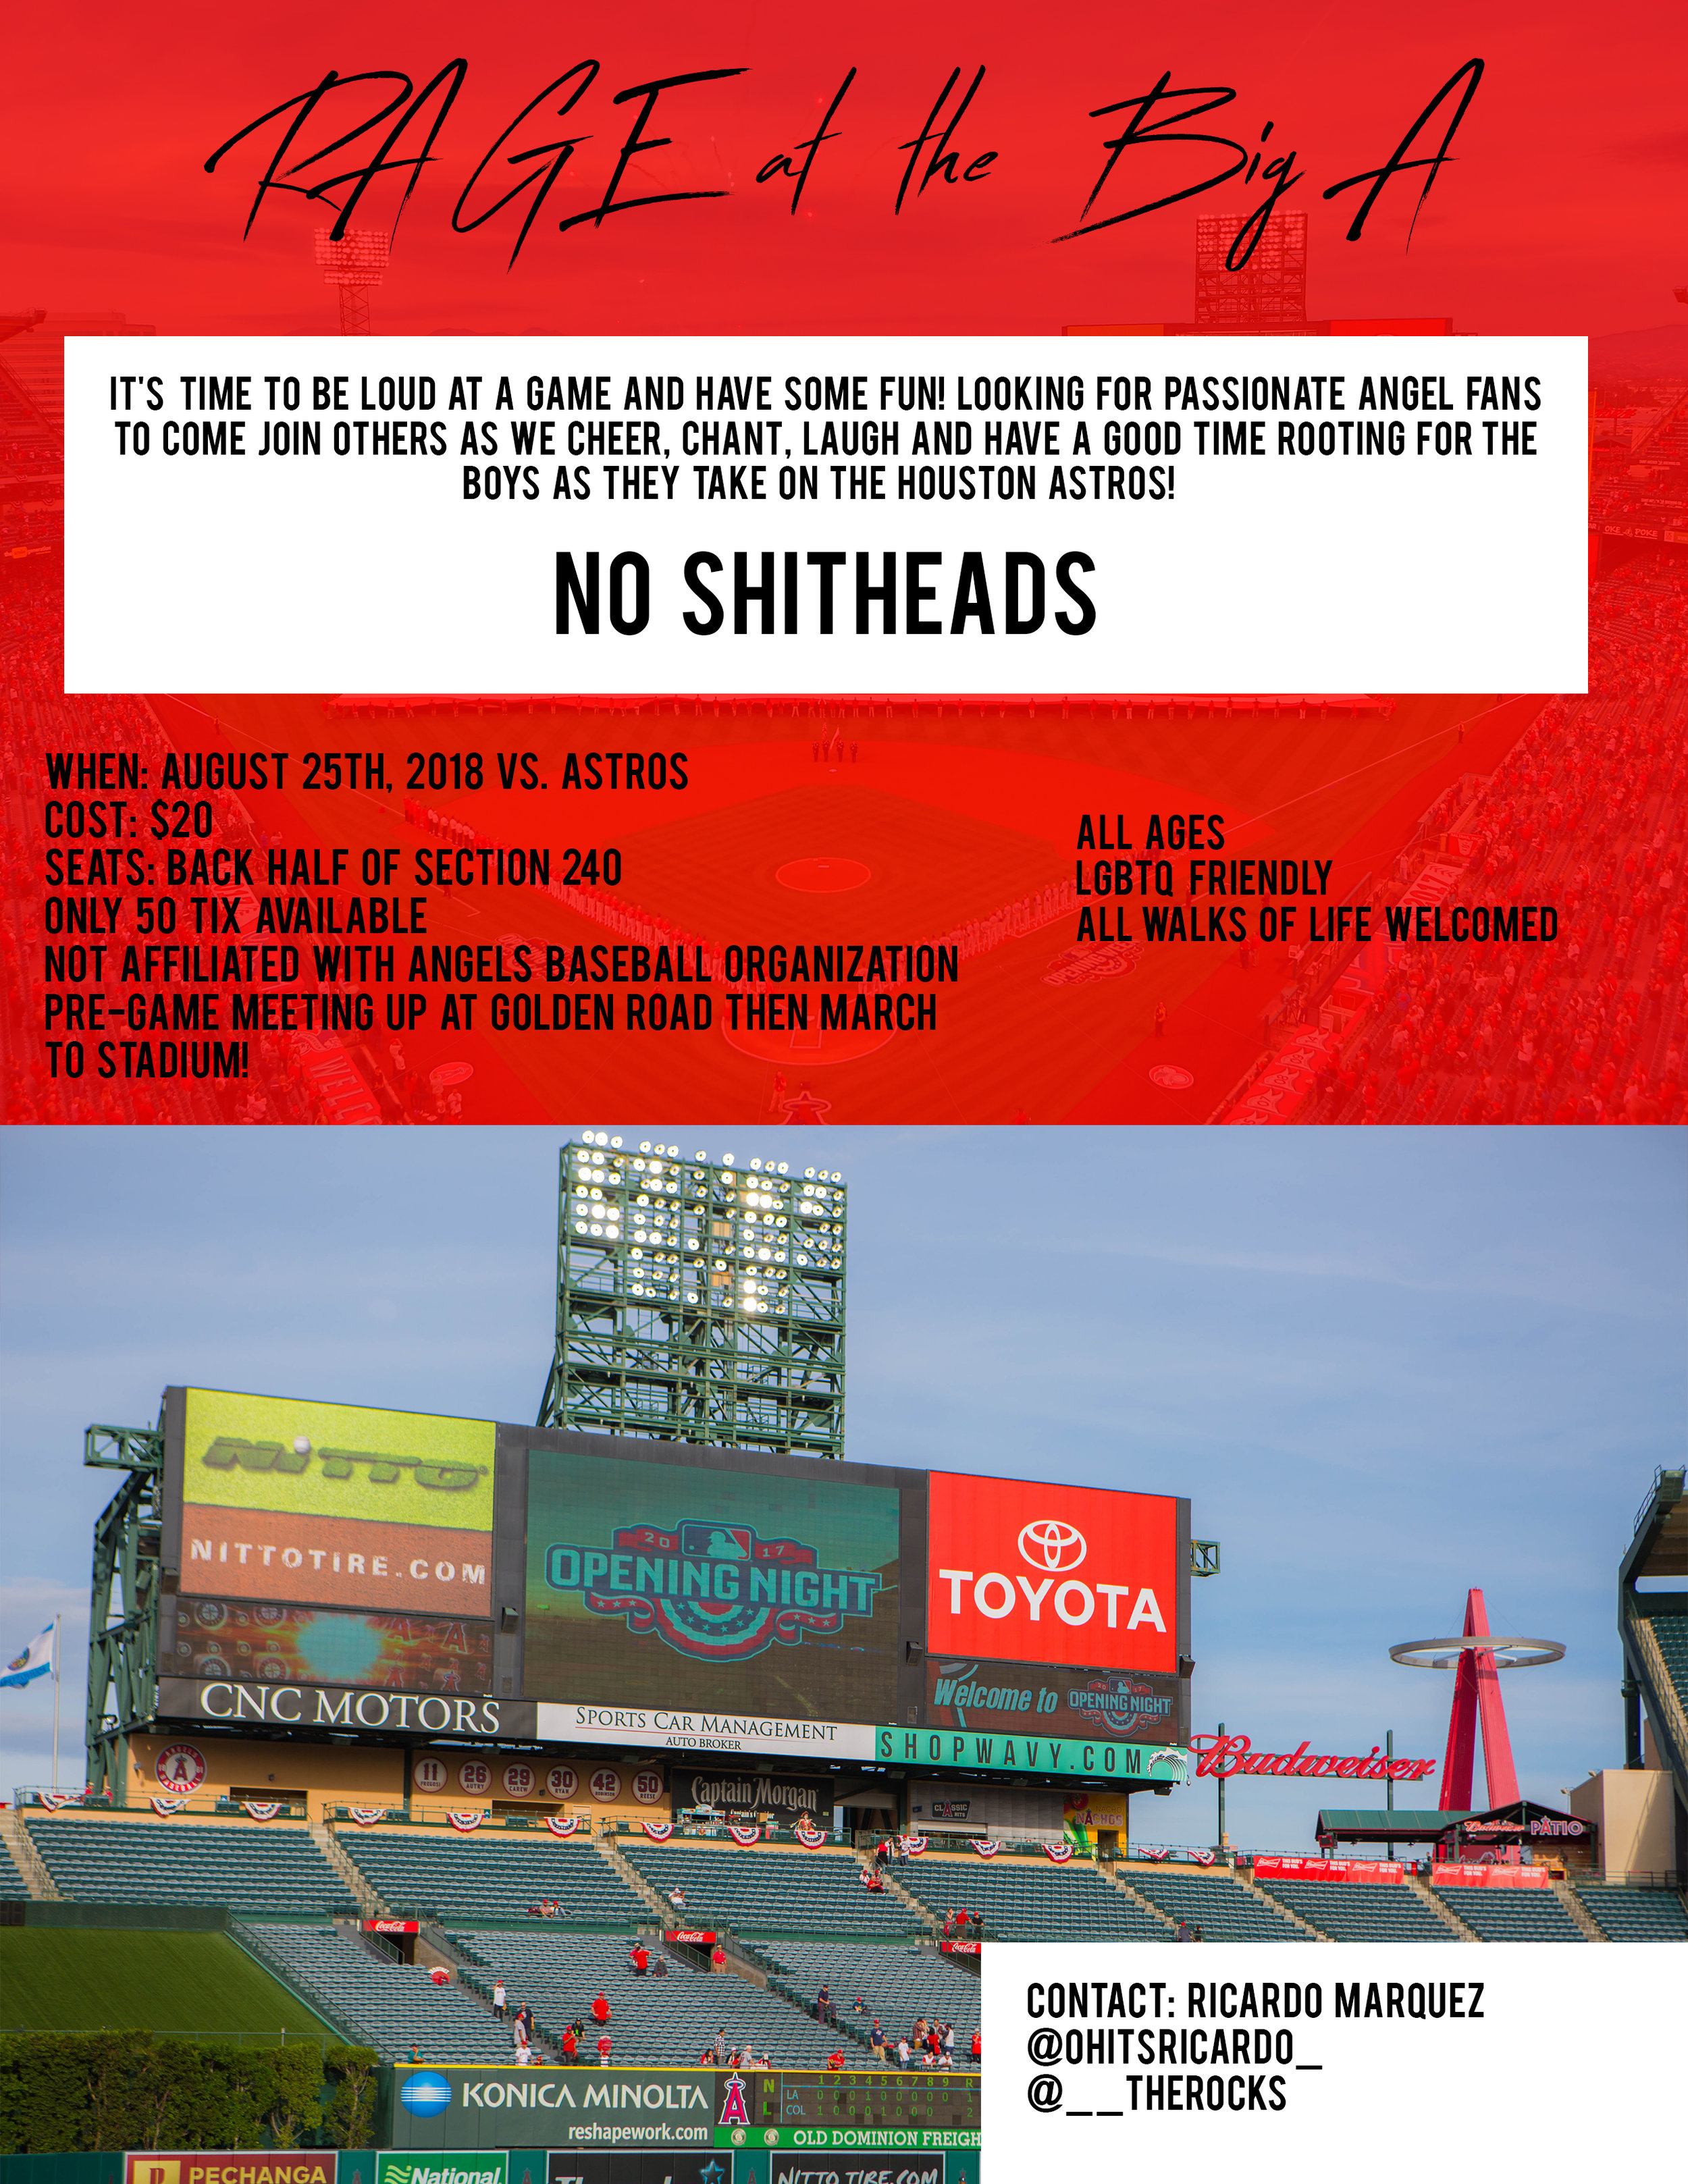 Rage at the Big A Flyer.jpg